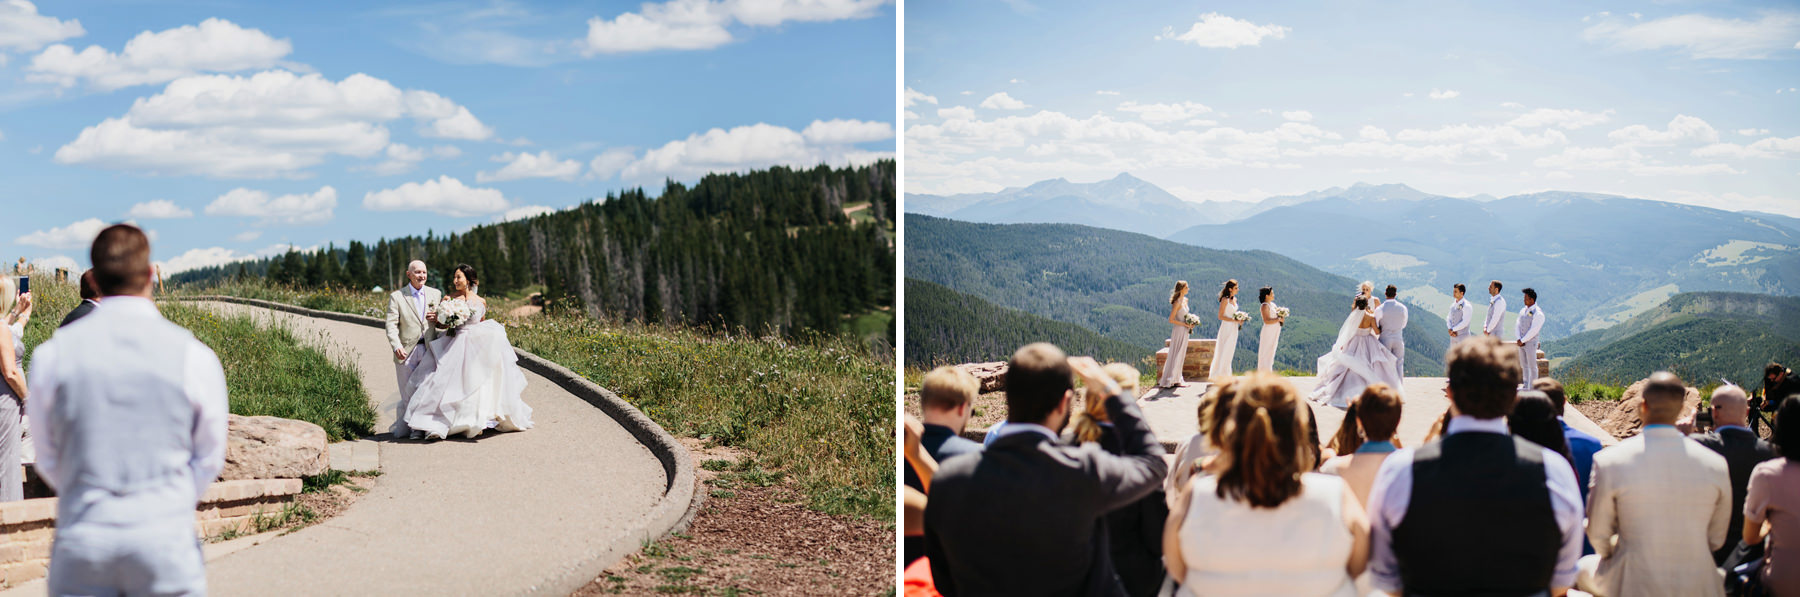 3_Vail Wedding Deck Mountain Top Wedding Vail, Colorado_Kindling Wedding Photography.JPG